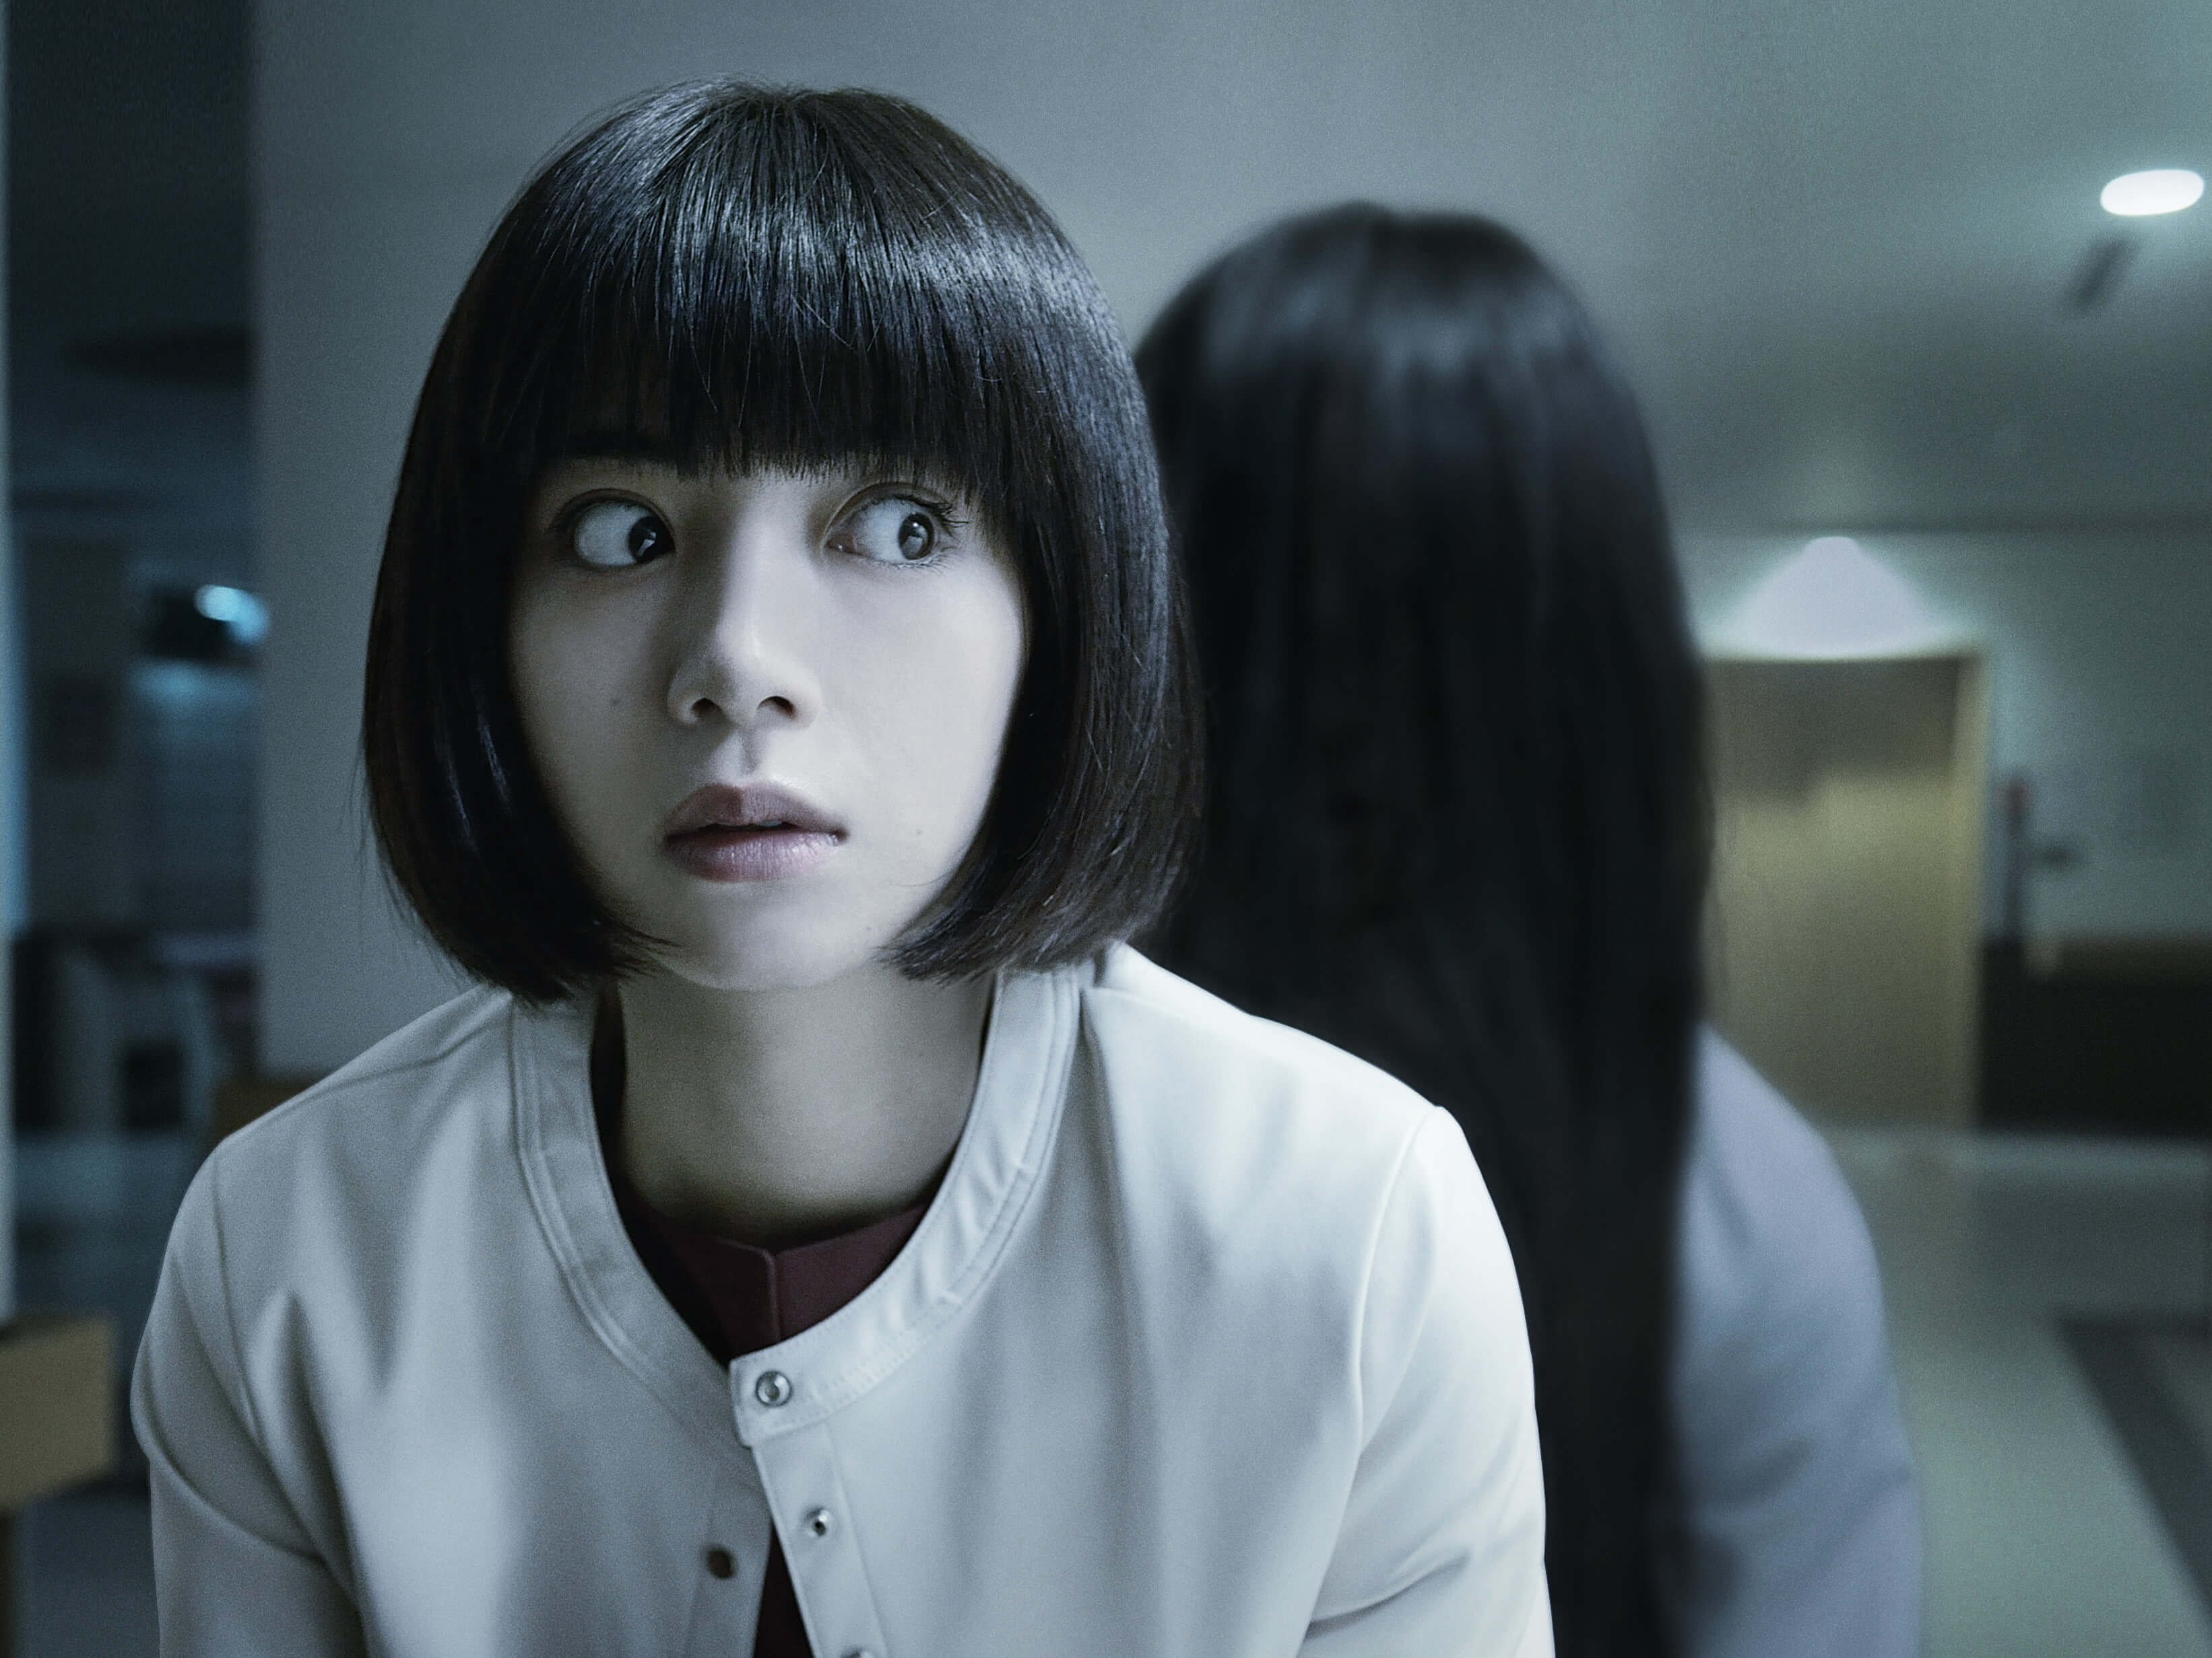 Poster Teases New Ring Film Sadako Releasing May 24 Moshi Moshi Nippon もしもしにっぽん